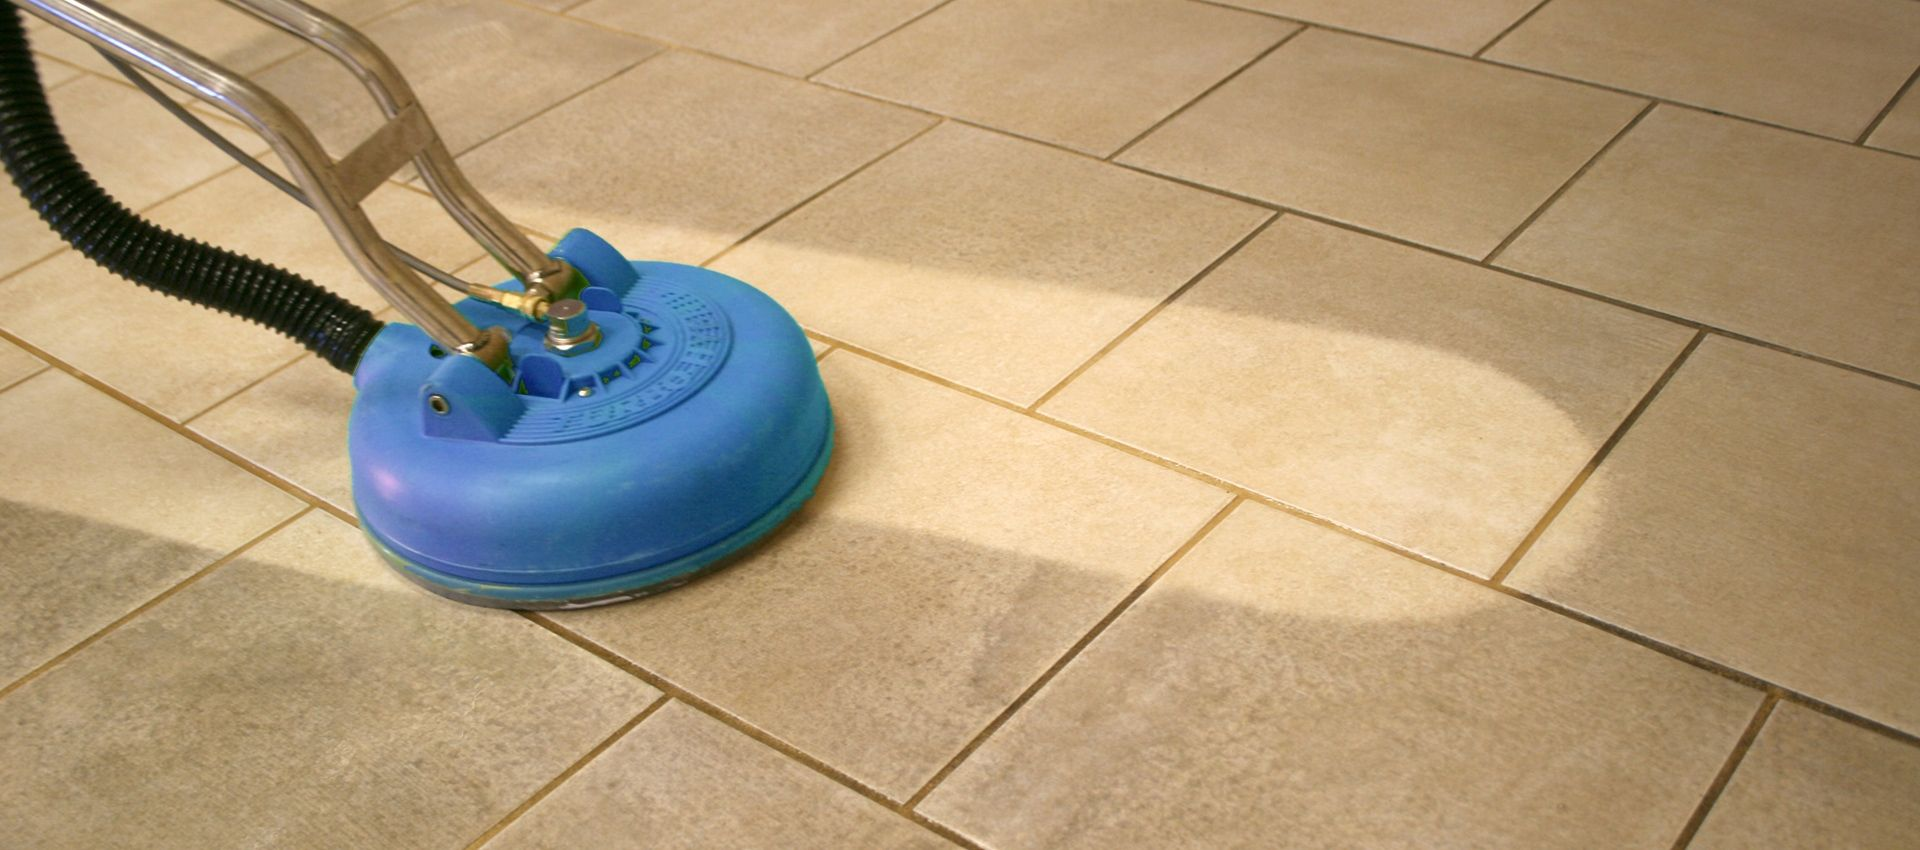 Tile Mopping Machine | Tile Design Ideas